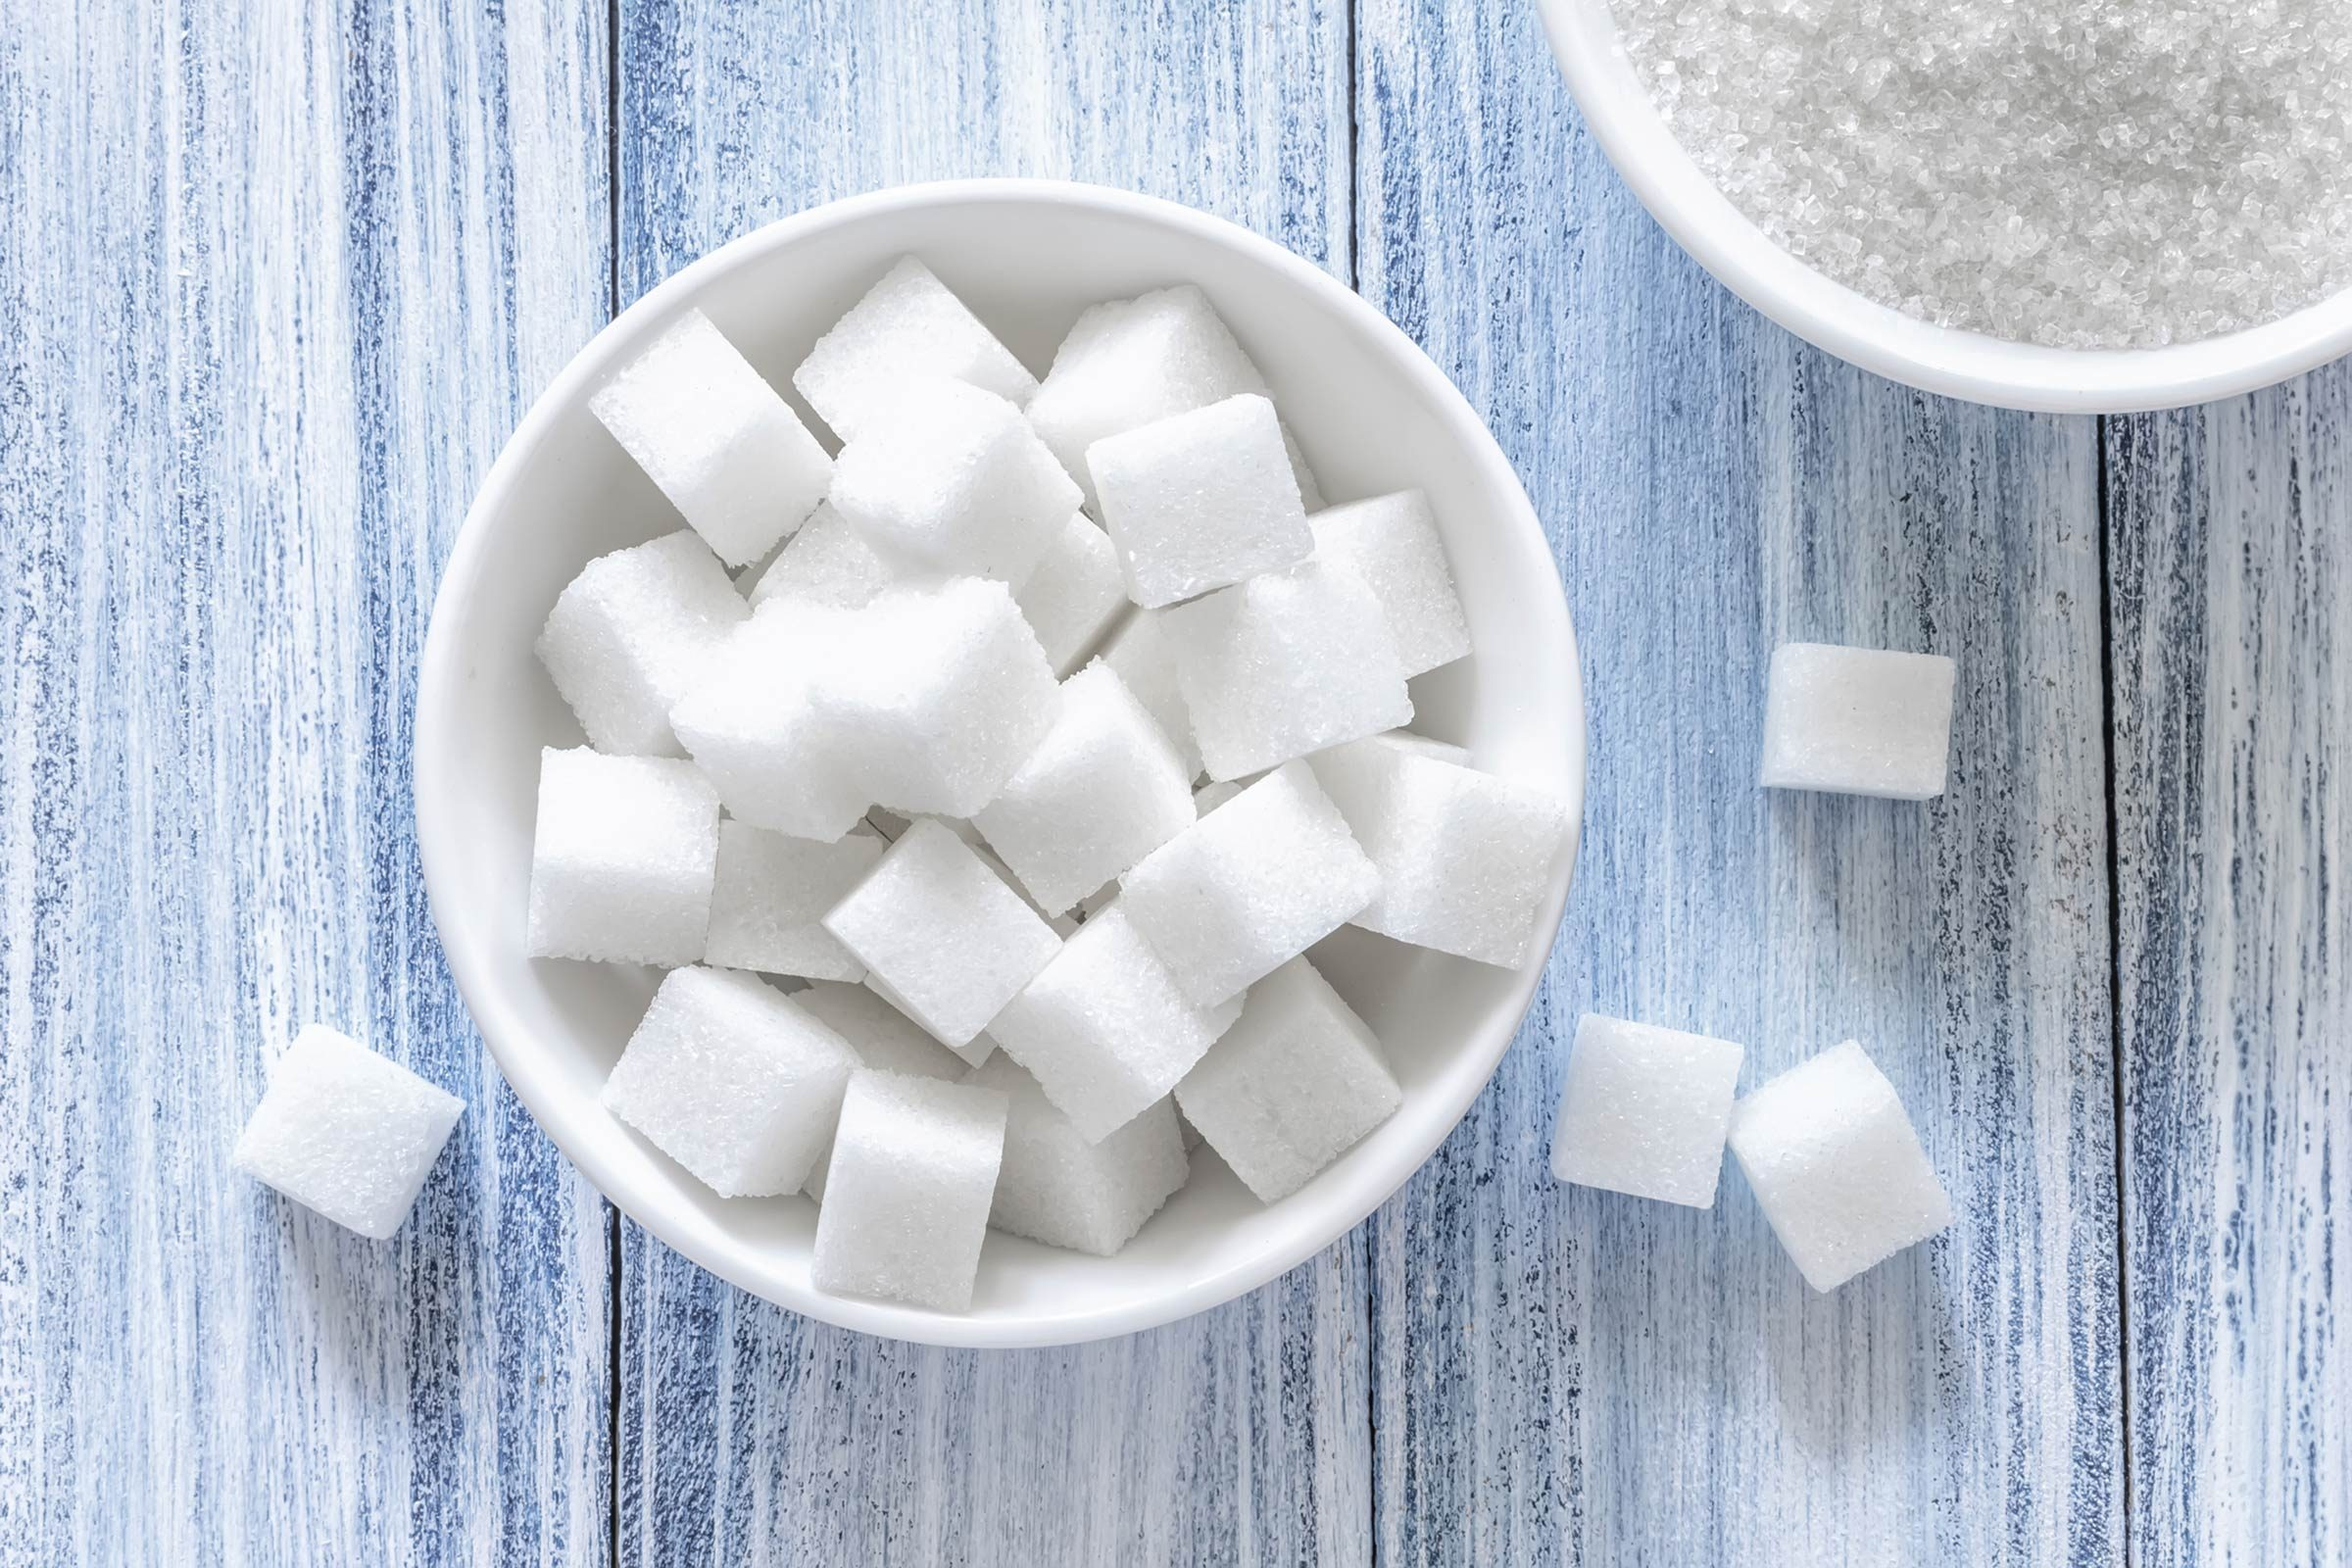 foods that lower your libido   a bowl of sugar cubes